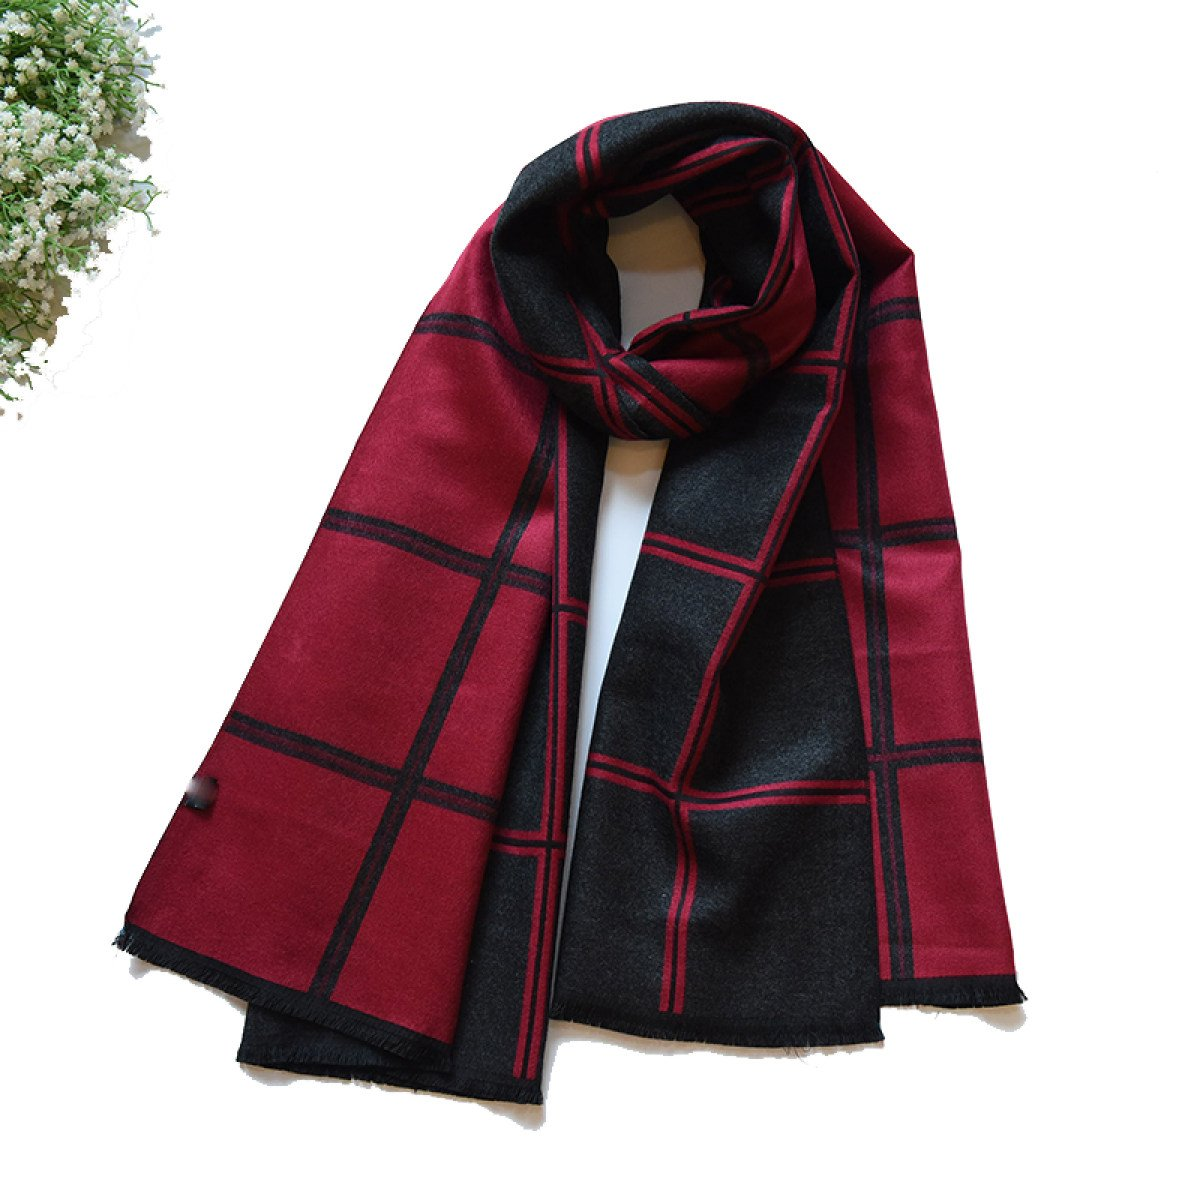 F CCAILIS Men And Women Autumn And Winter England Double Sided Lattice Fashion Scarf Thicker Shawl Warm Long Out,AOneSize